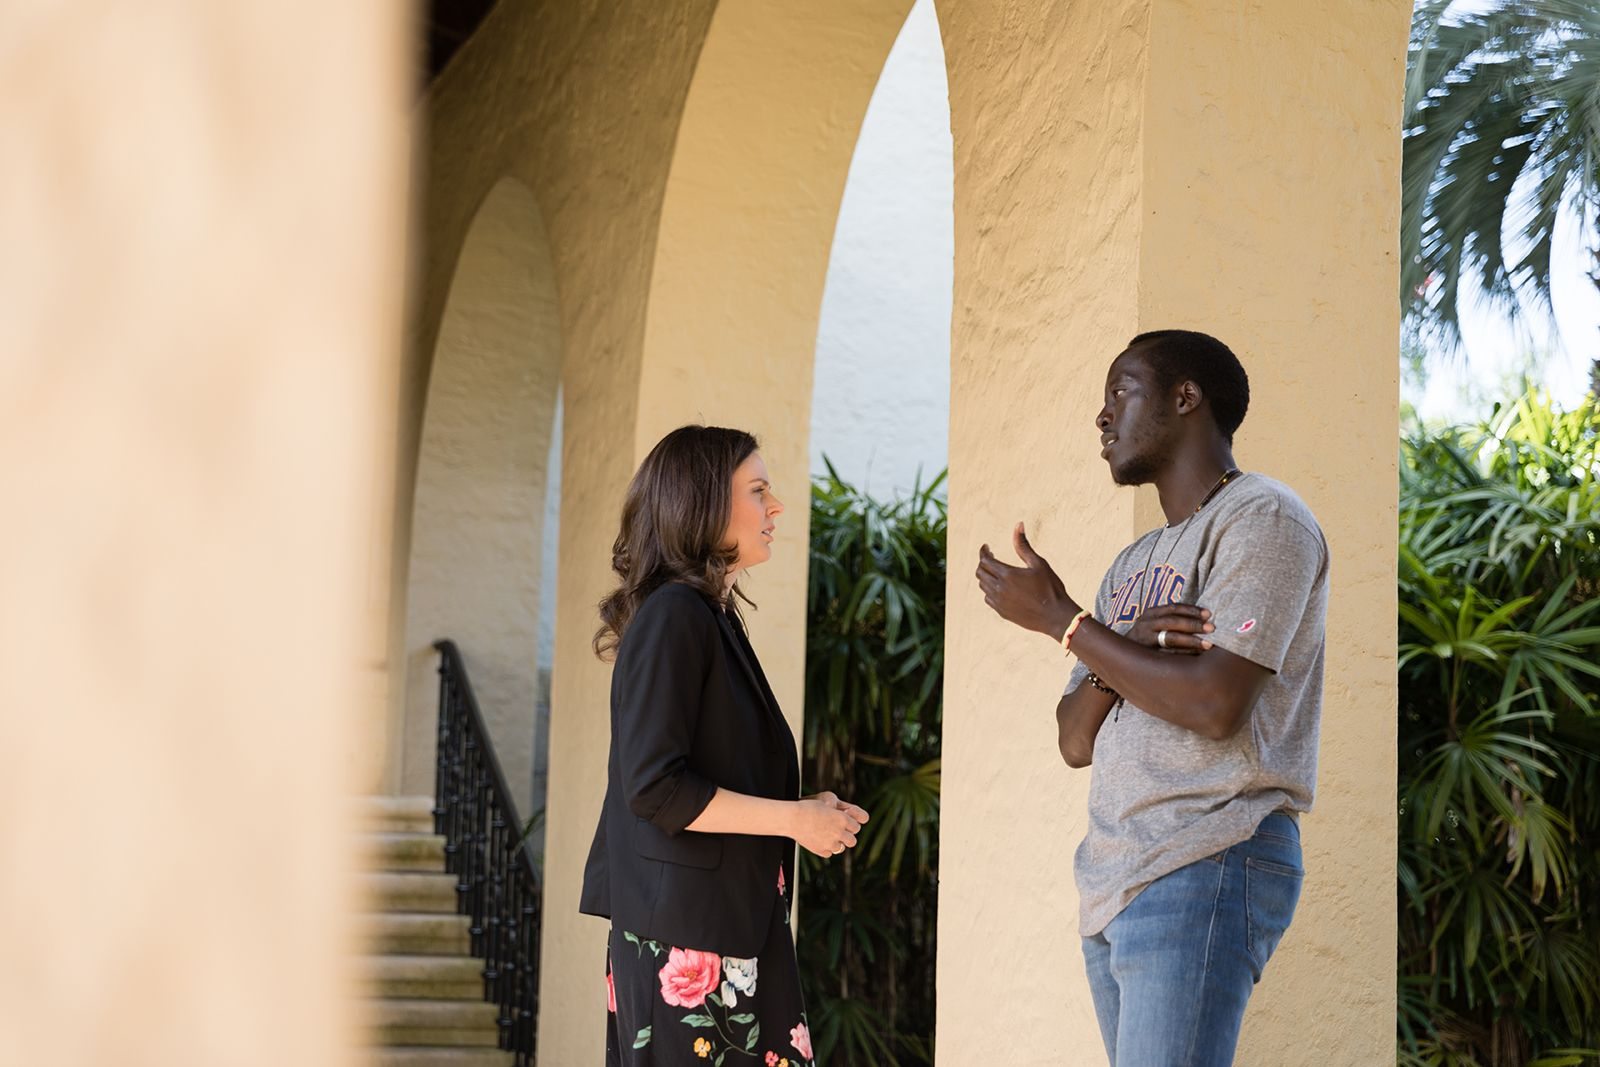 Mo Coffey '08 and Isaac James '19, a Rollins graduate and Rollins student, discuss public policy careers.